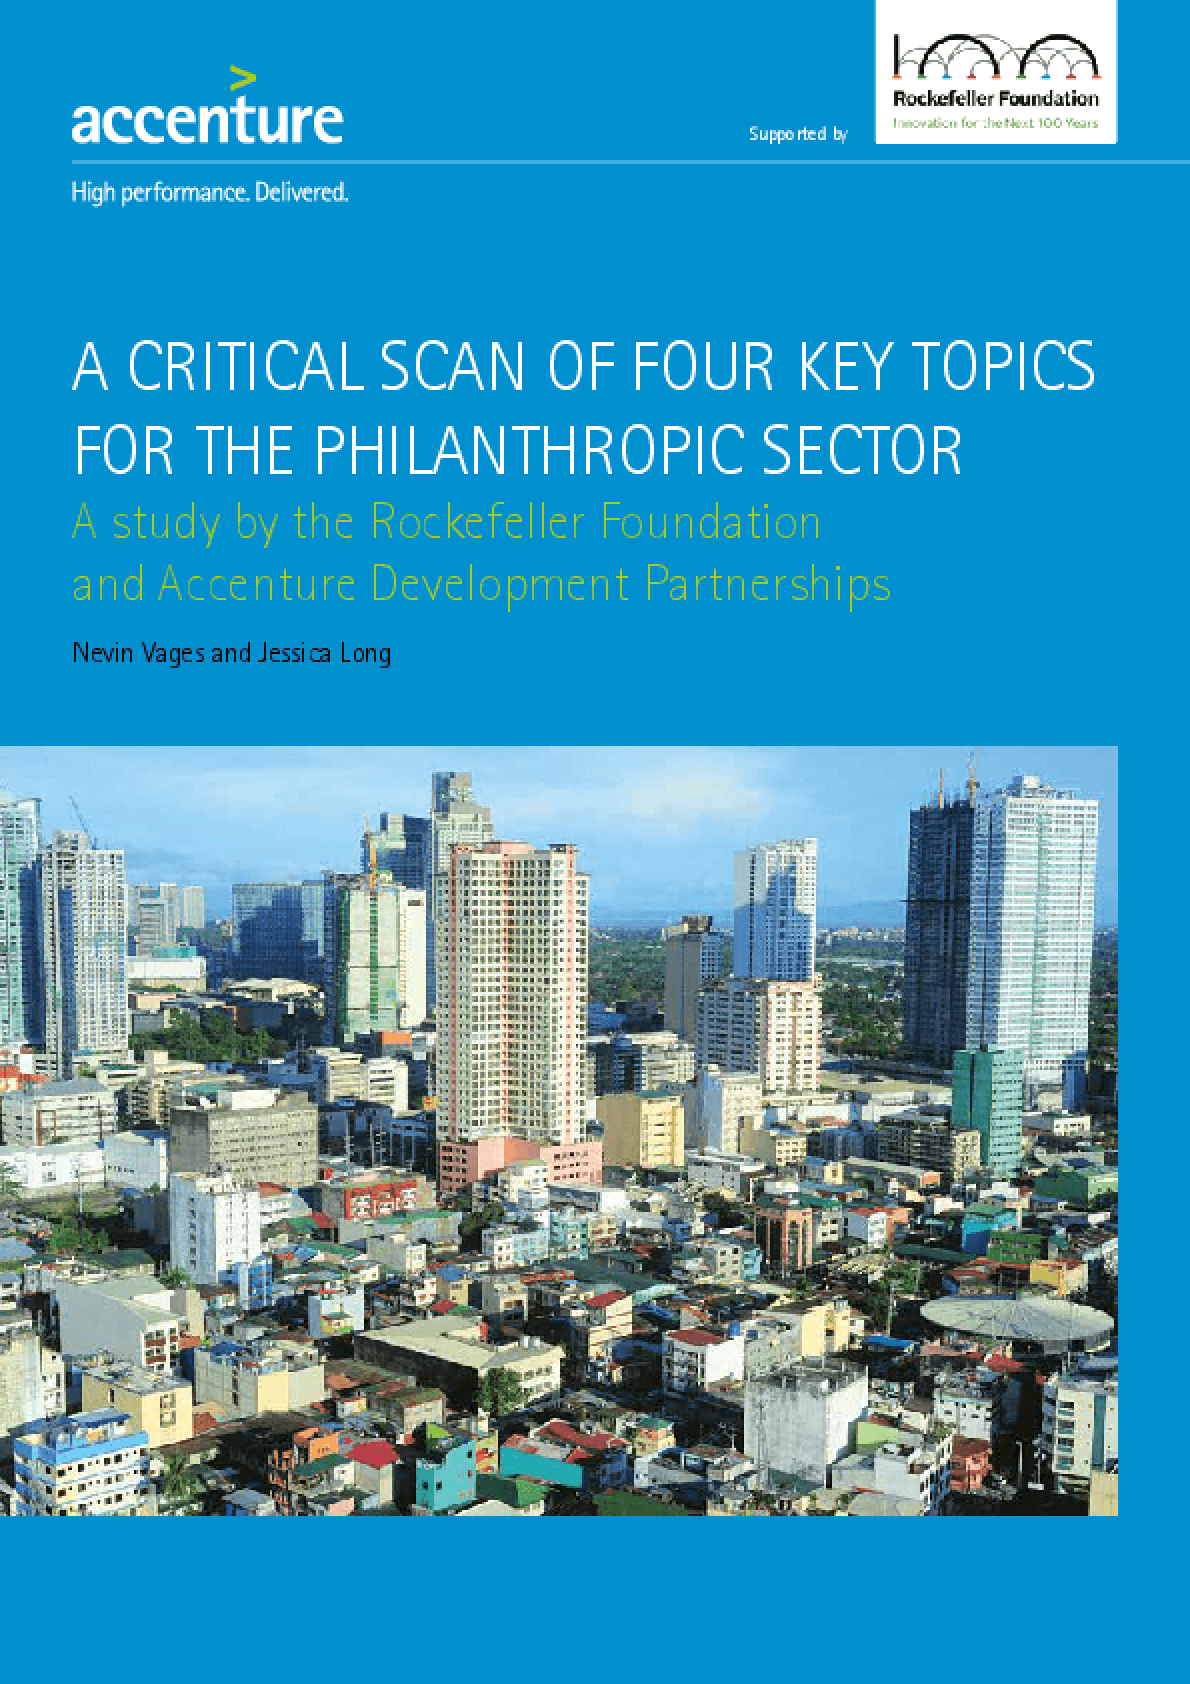 Critical Scan of Four Key Topics for the Philanthropic Sector: A study by the Rockefeller Foundation and Accenture Development Partnerships, A